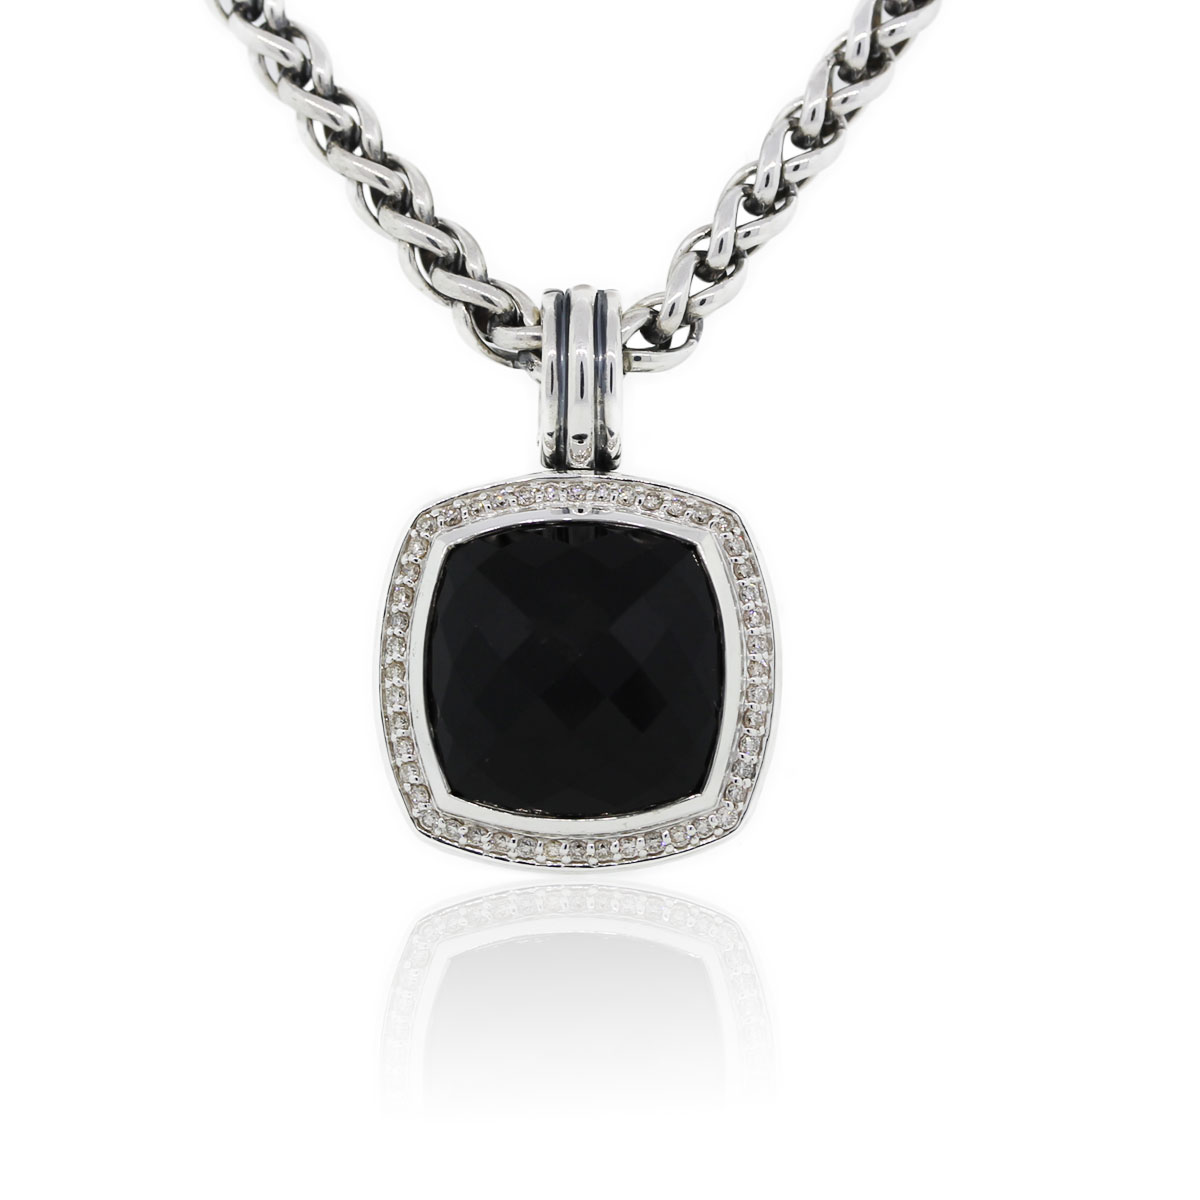 You are viewing this David Yurman Onyx Albion and Diamond Sterling Silver Pendant Necklace!